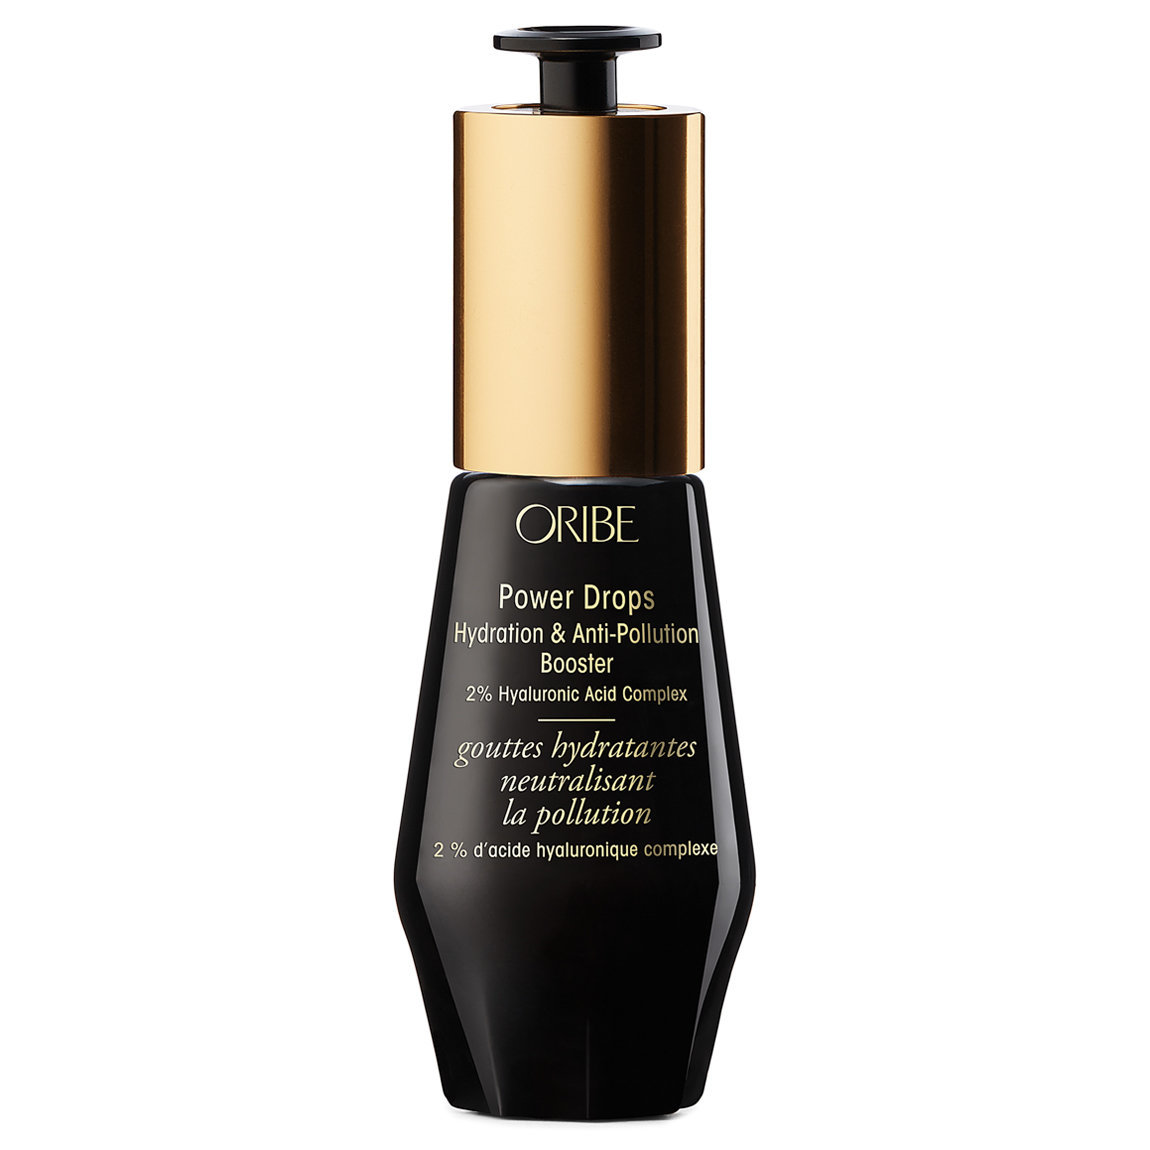 Oribe Power Drops Hydration & Anti-Pollution Booster alternative view 1 - product swatch.